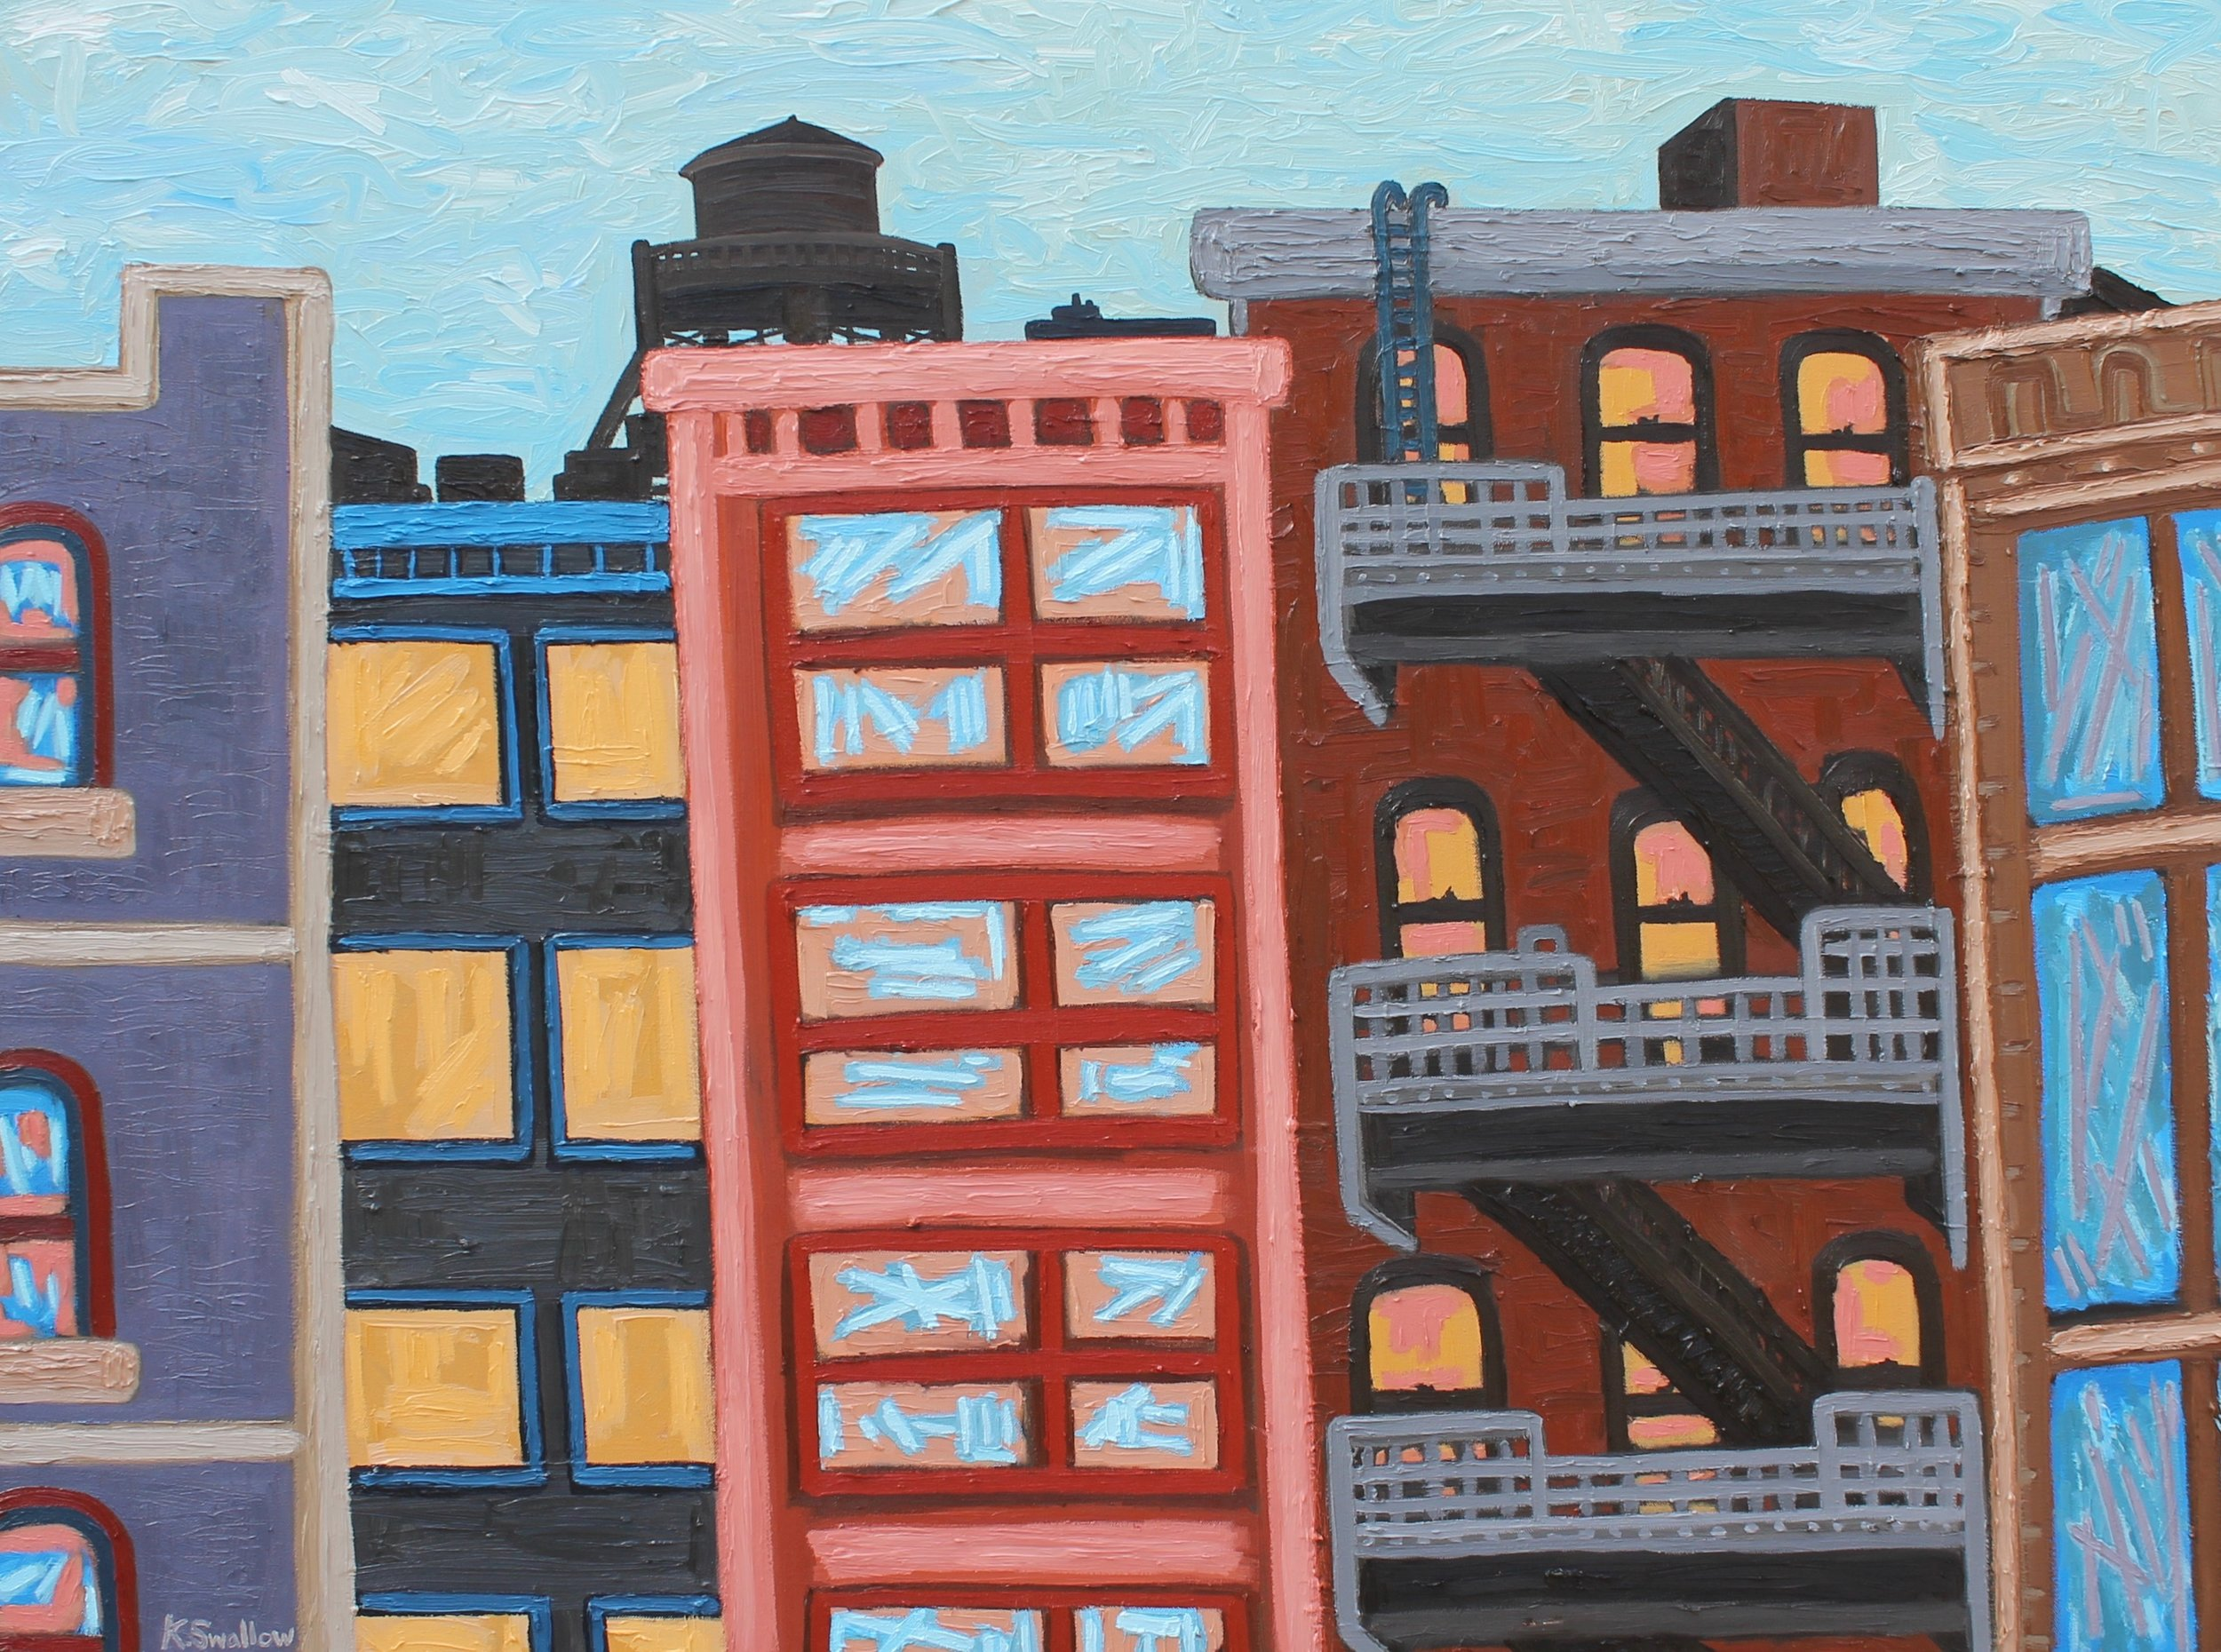 Wooster & Broome St. - NYC, oil on canvas, 36x48, 2017, AVAILABLE